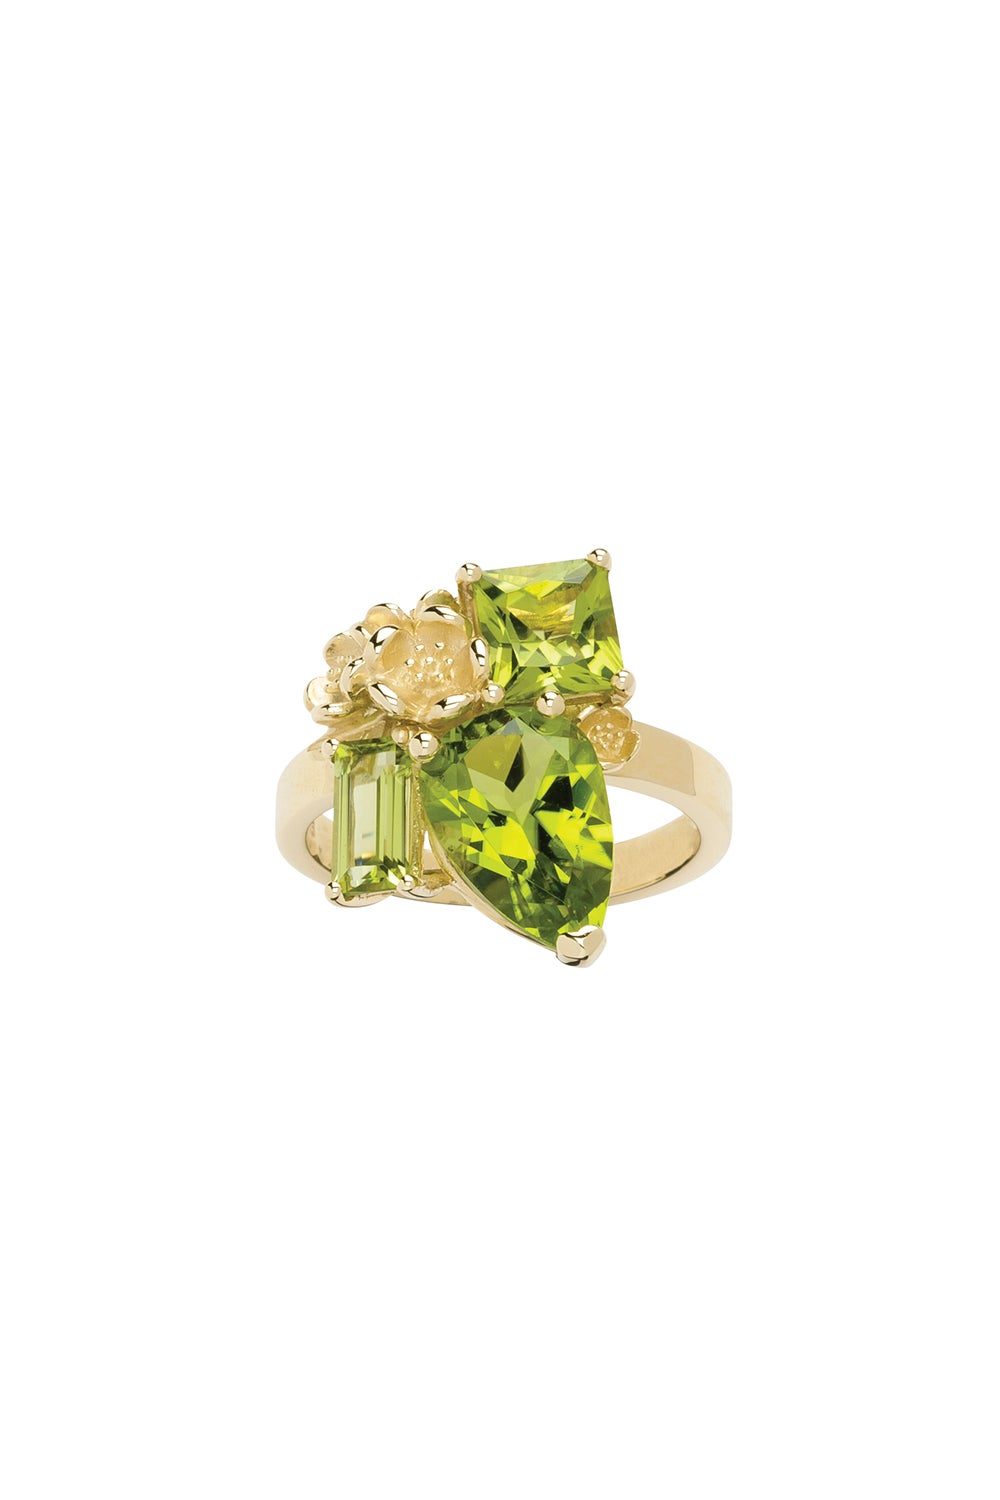 Rock Garden Ring Gold & Peridot